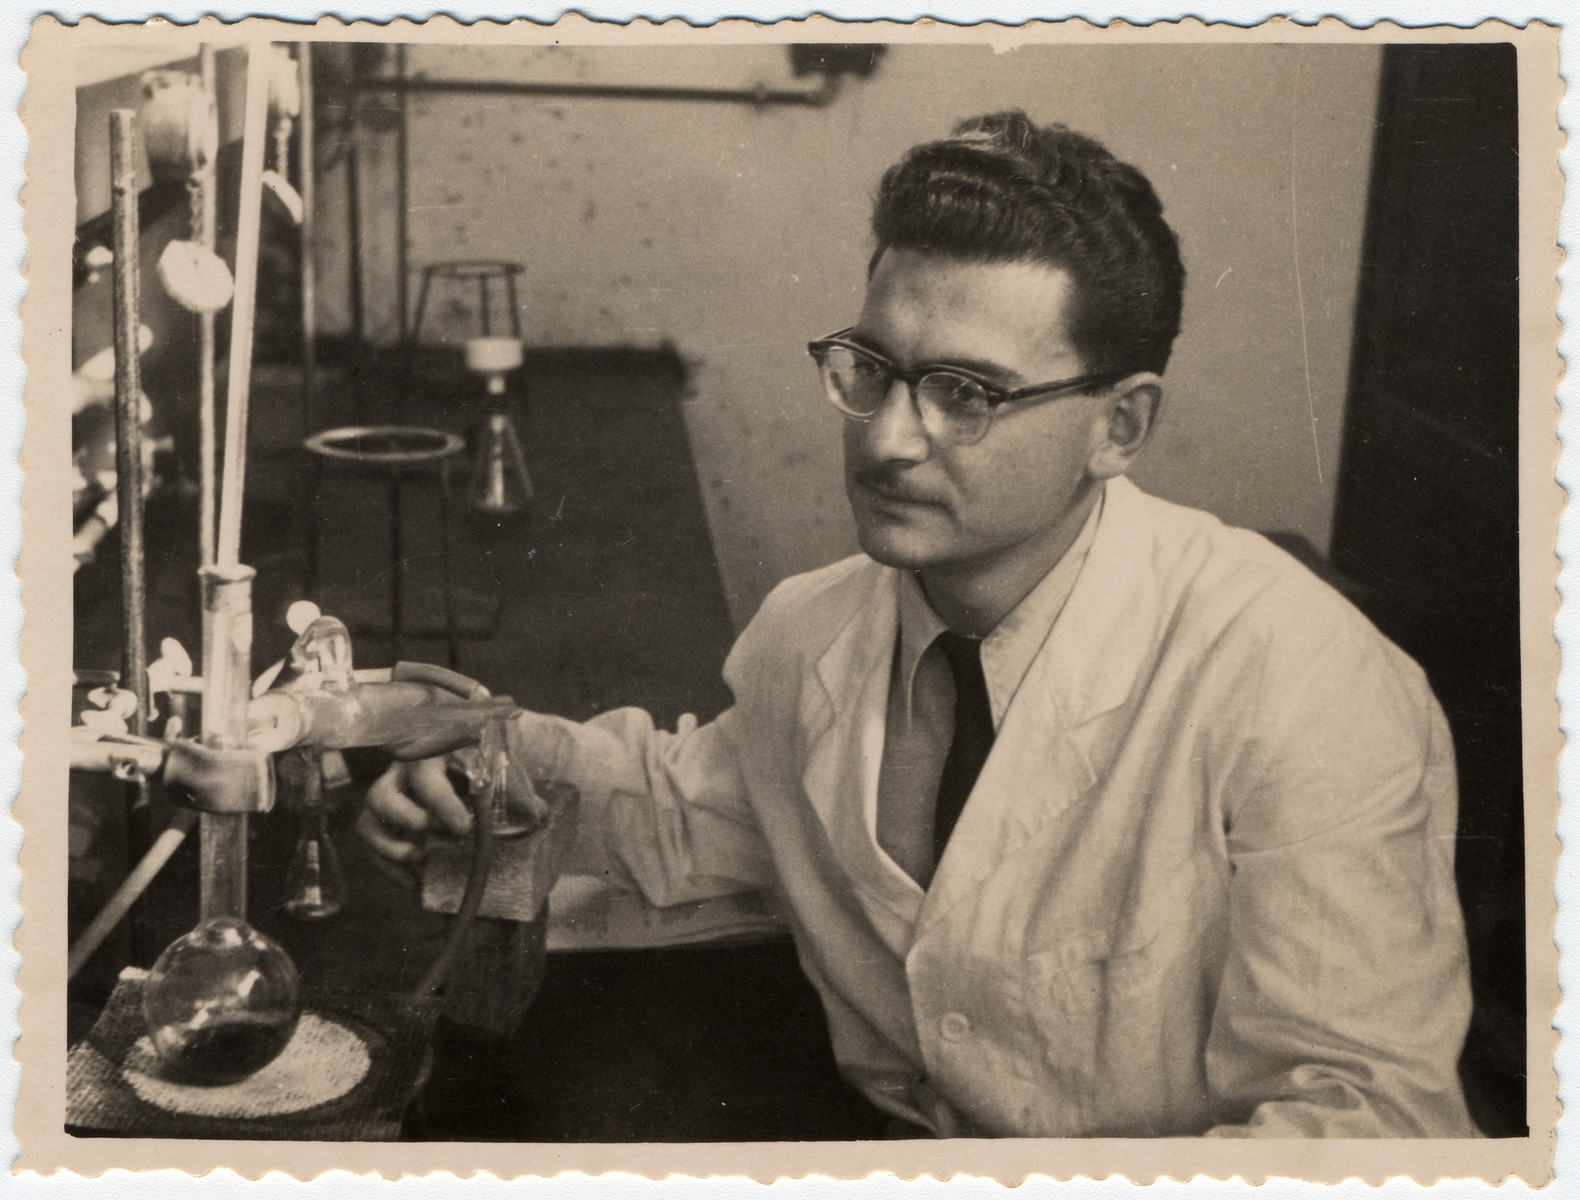 Albert Farhi works in a chemistry lab at the Technion in Haifa.